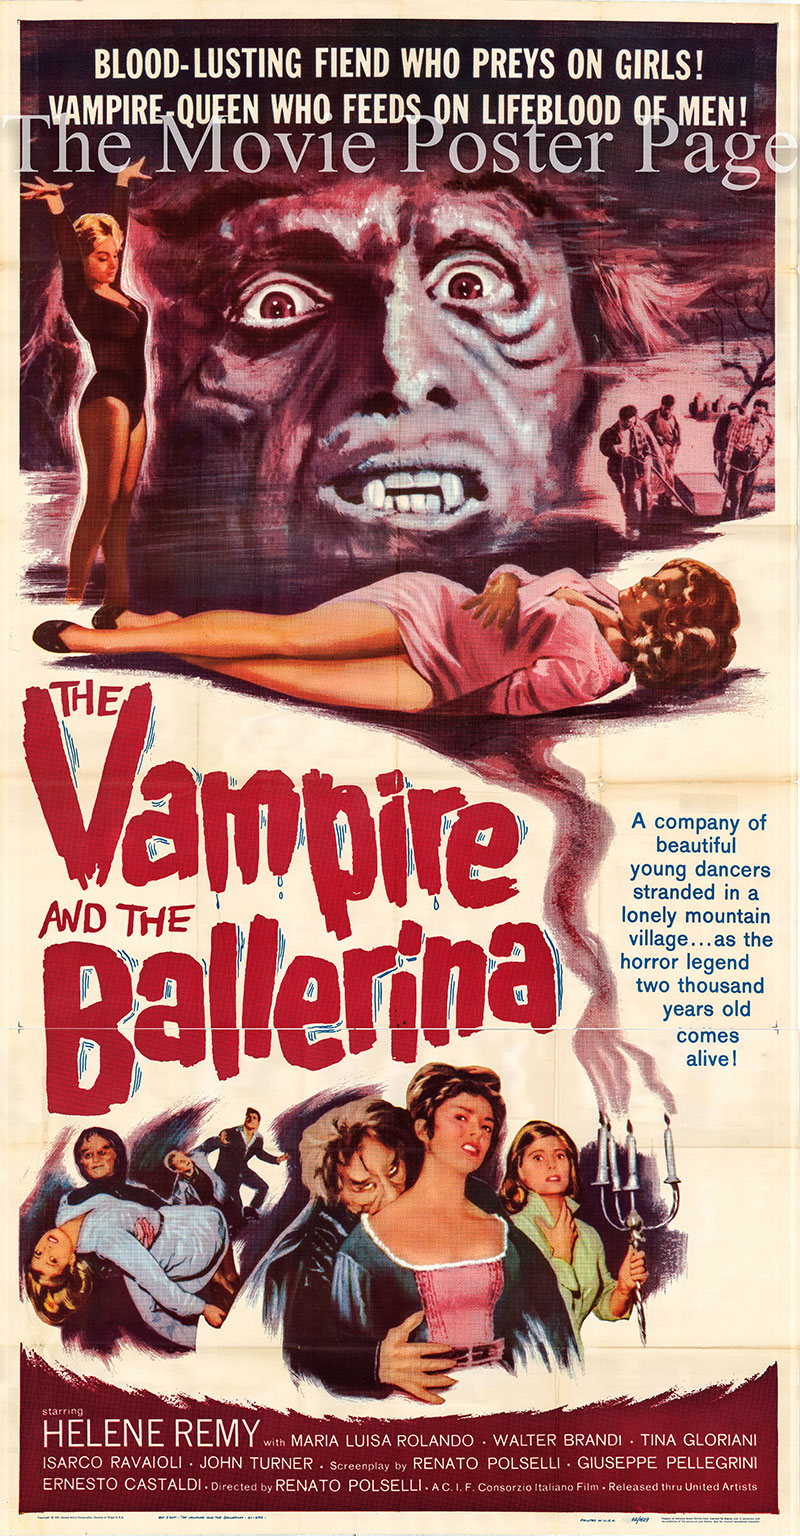 Pictured is a US three-sheet poster for a 1962 rerelease of the 1960 Renato Polselli film The Vampire and the Ballerina starring Helene Remy as Luisa.